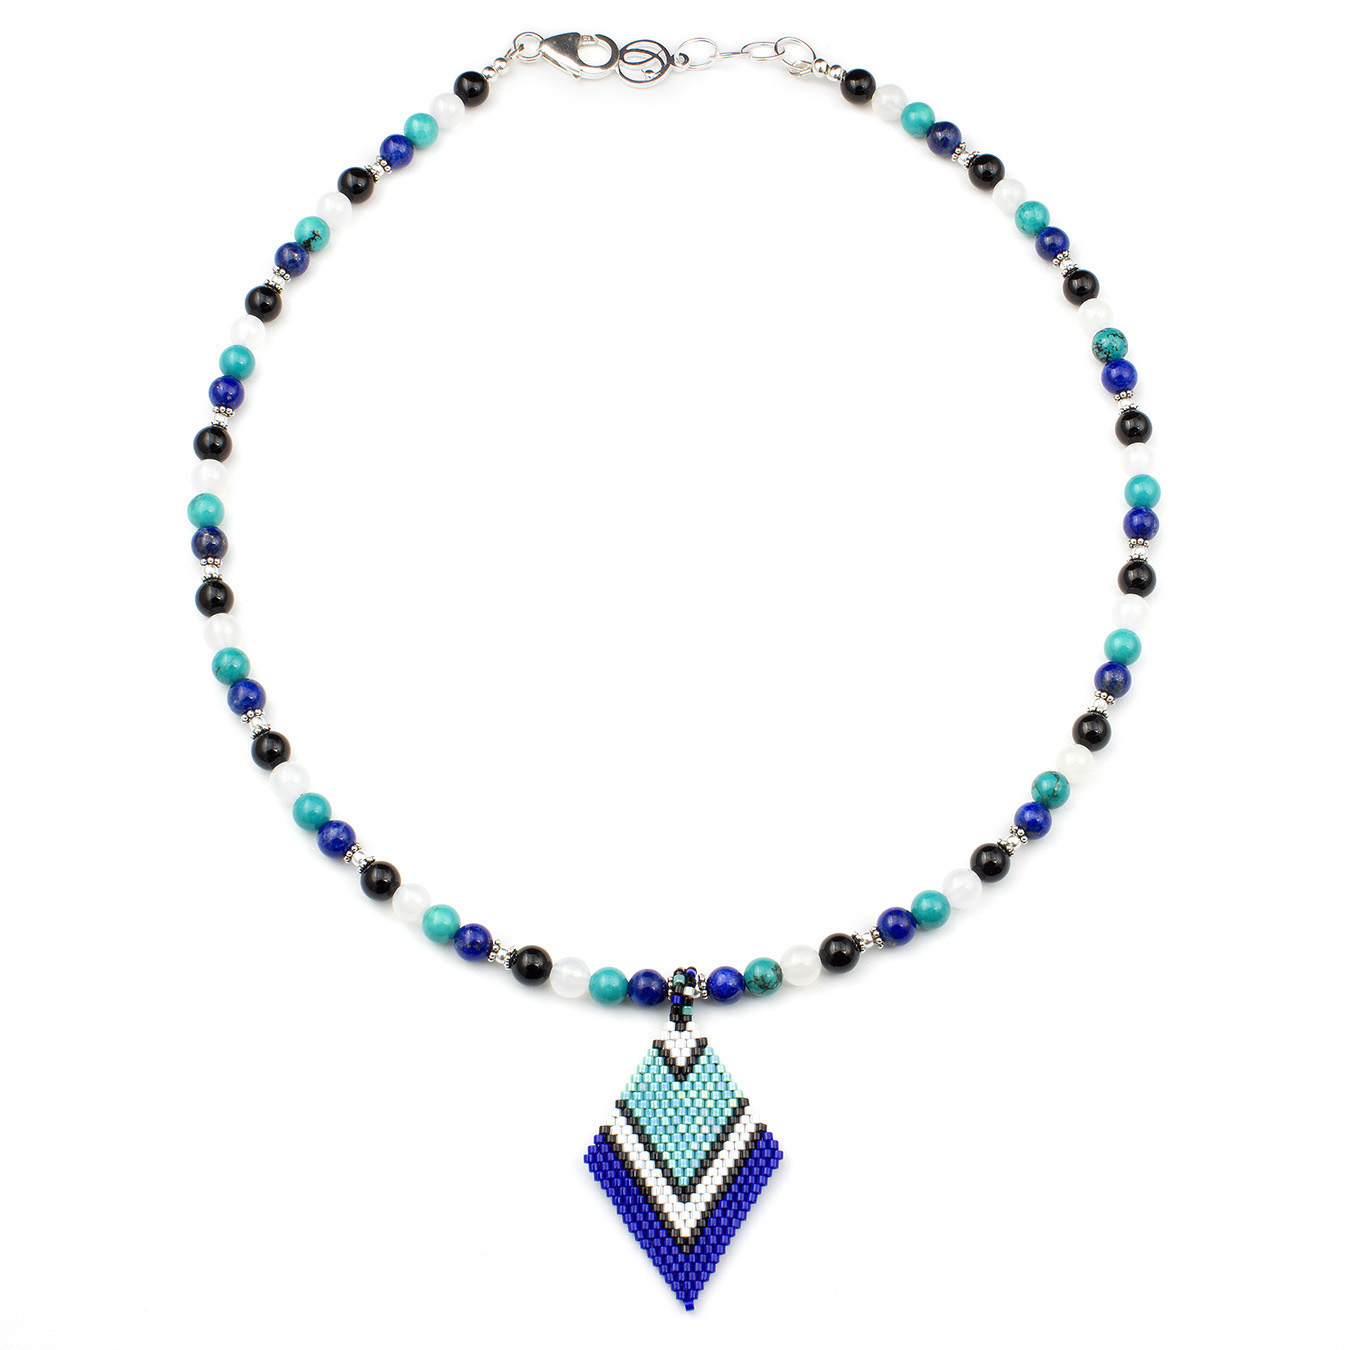 Custom seed bead necklace made with agate, lapis, and turquoise